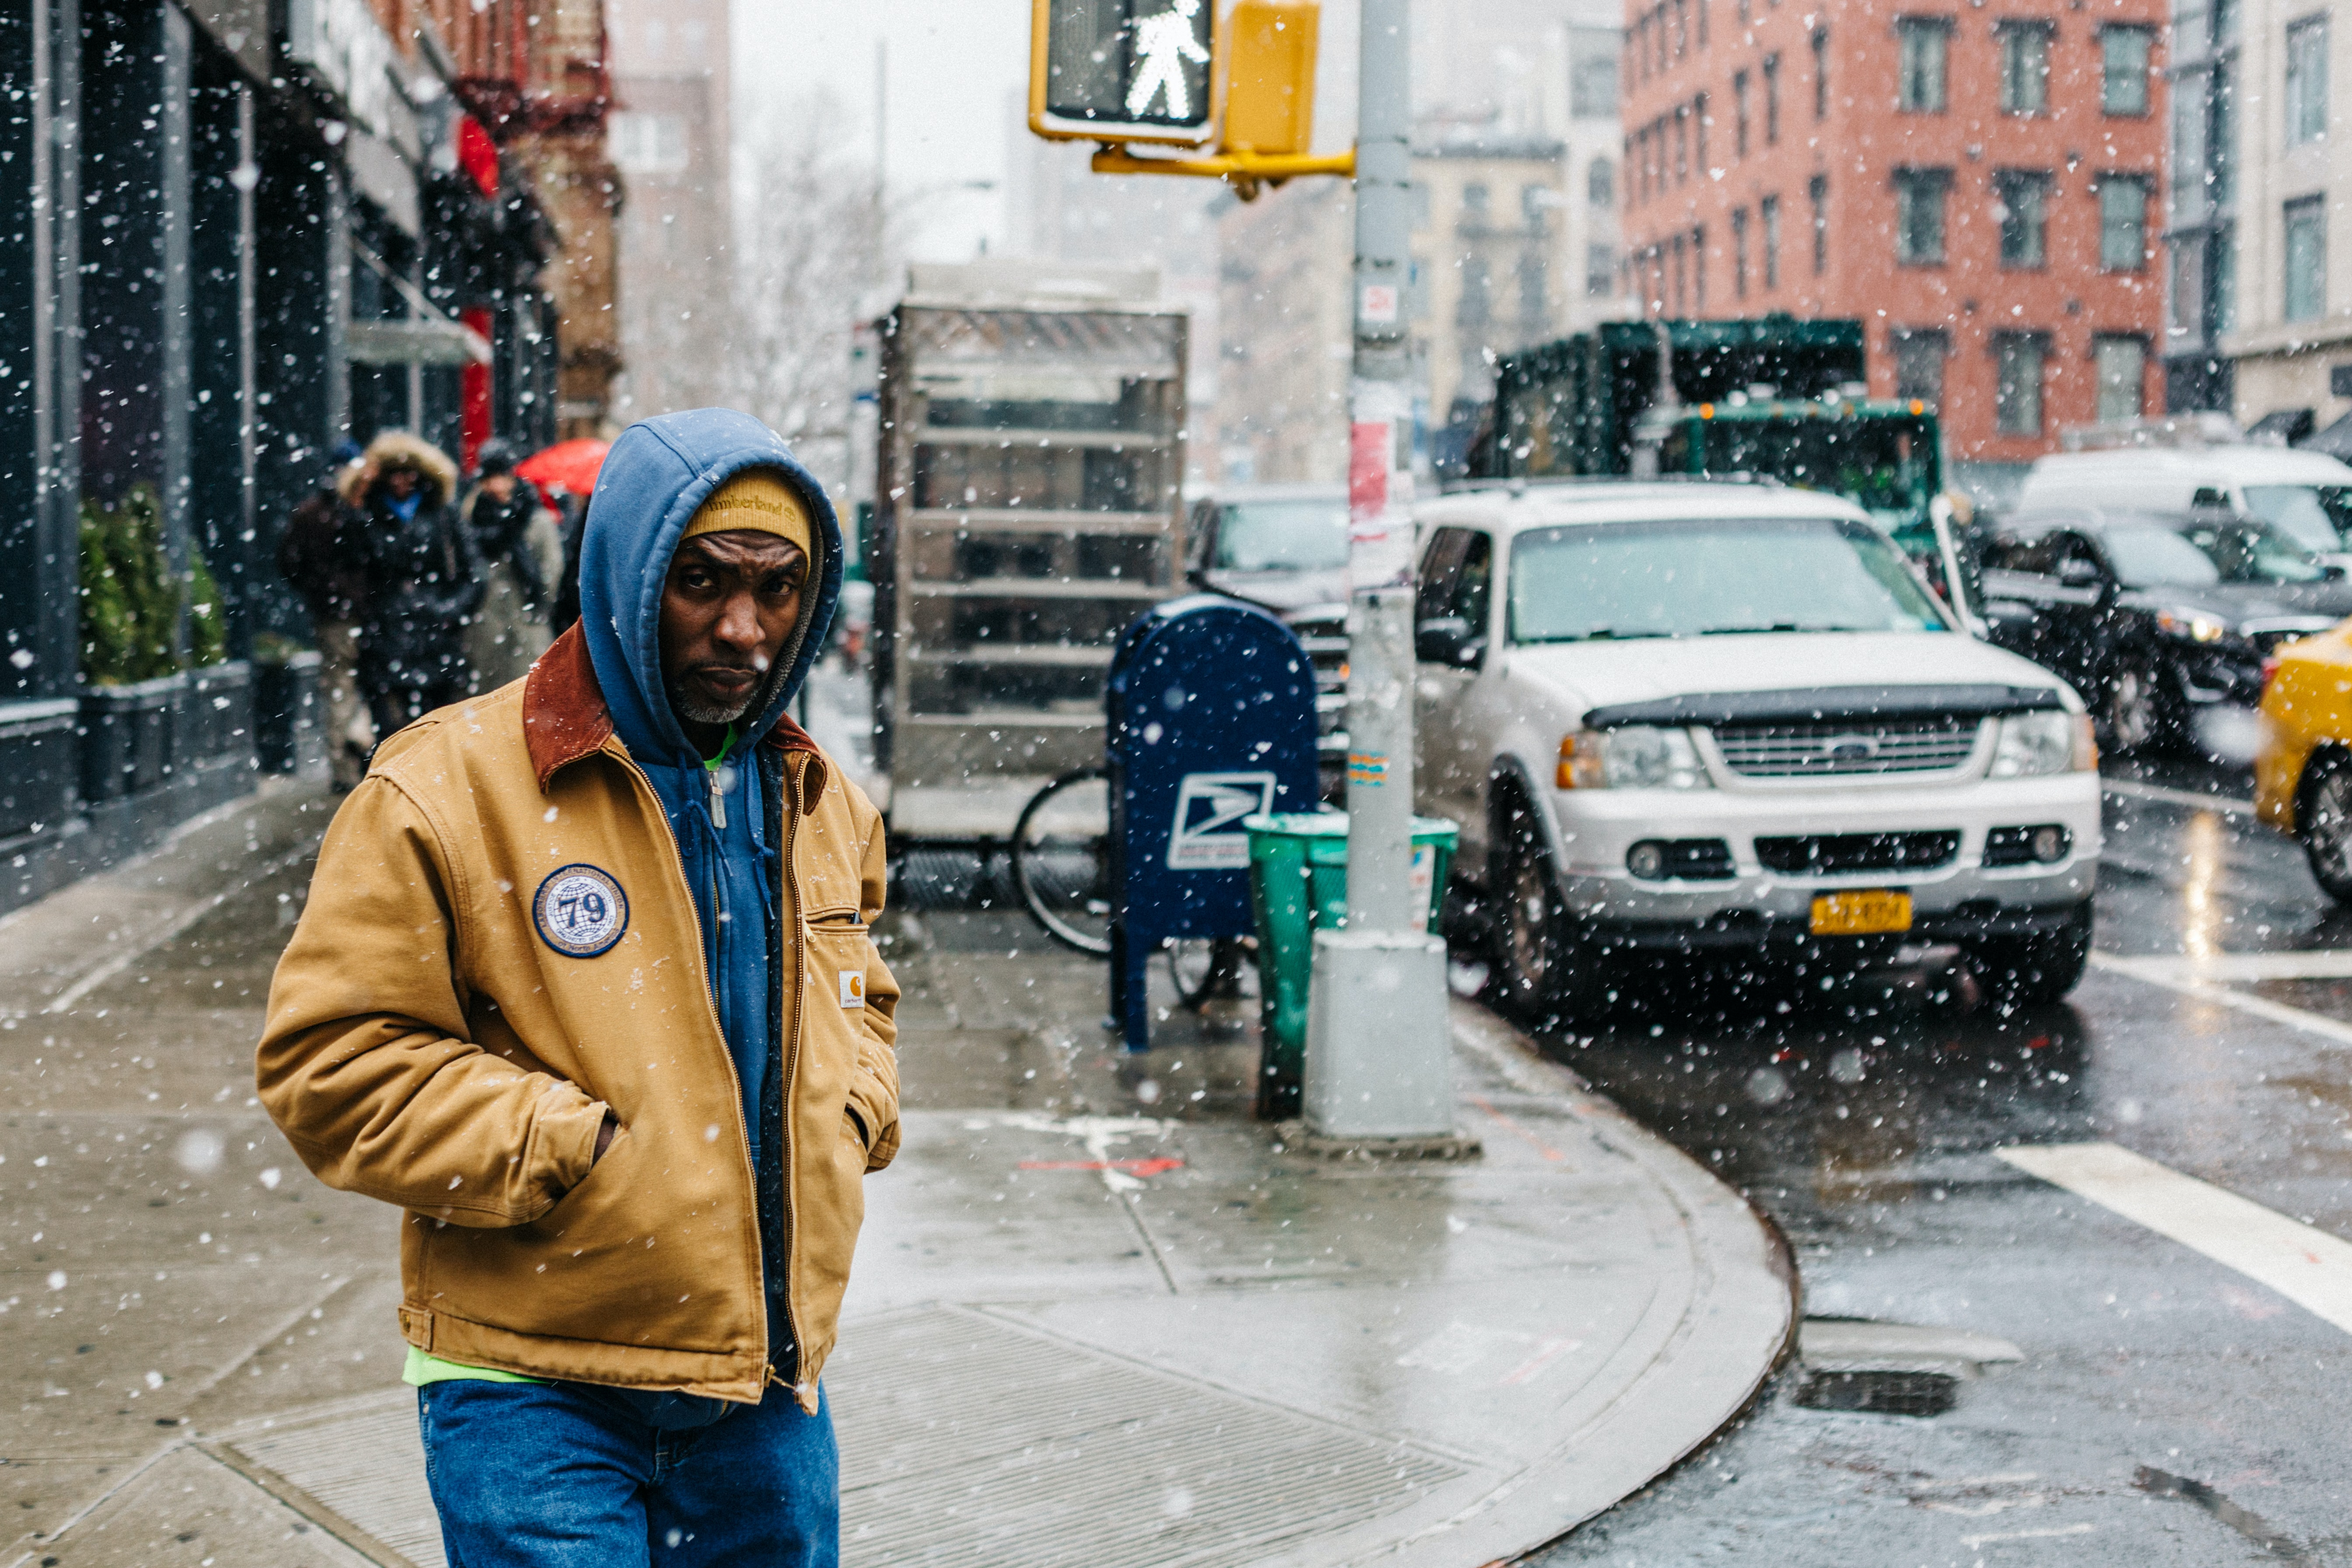 A man in a hoodie in the streets of New York on a snowy day